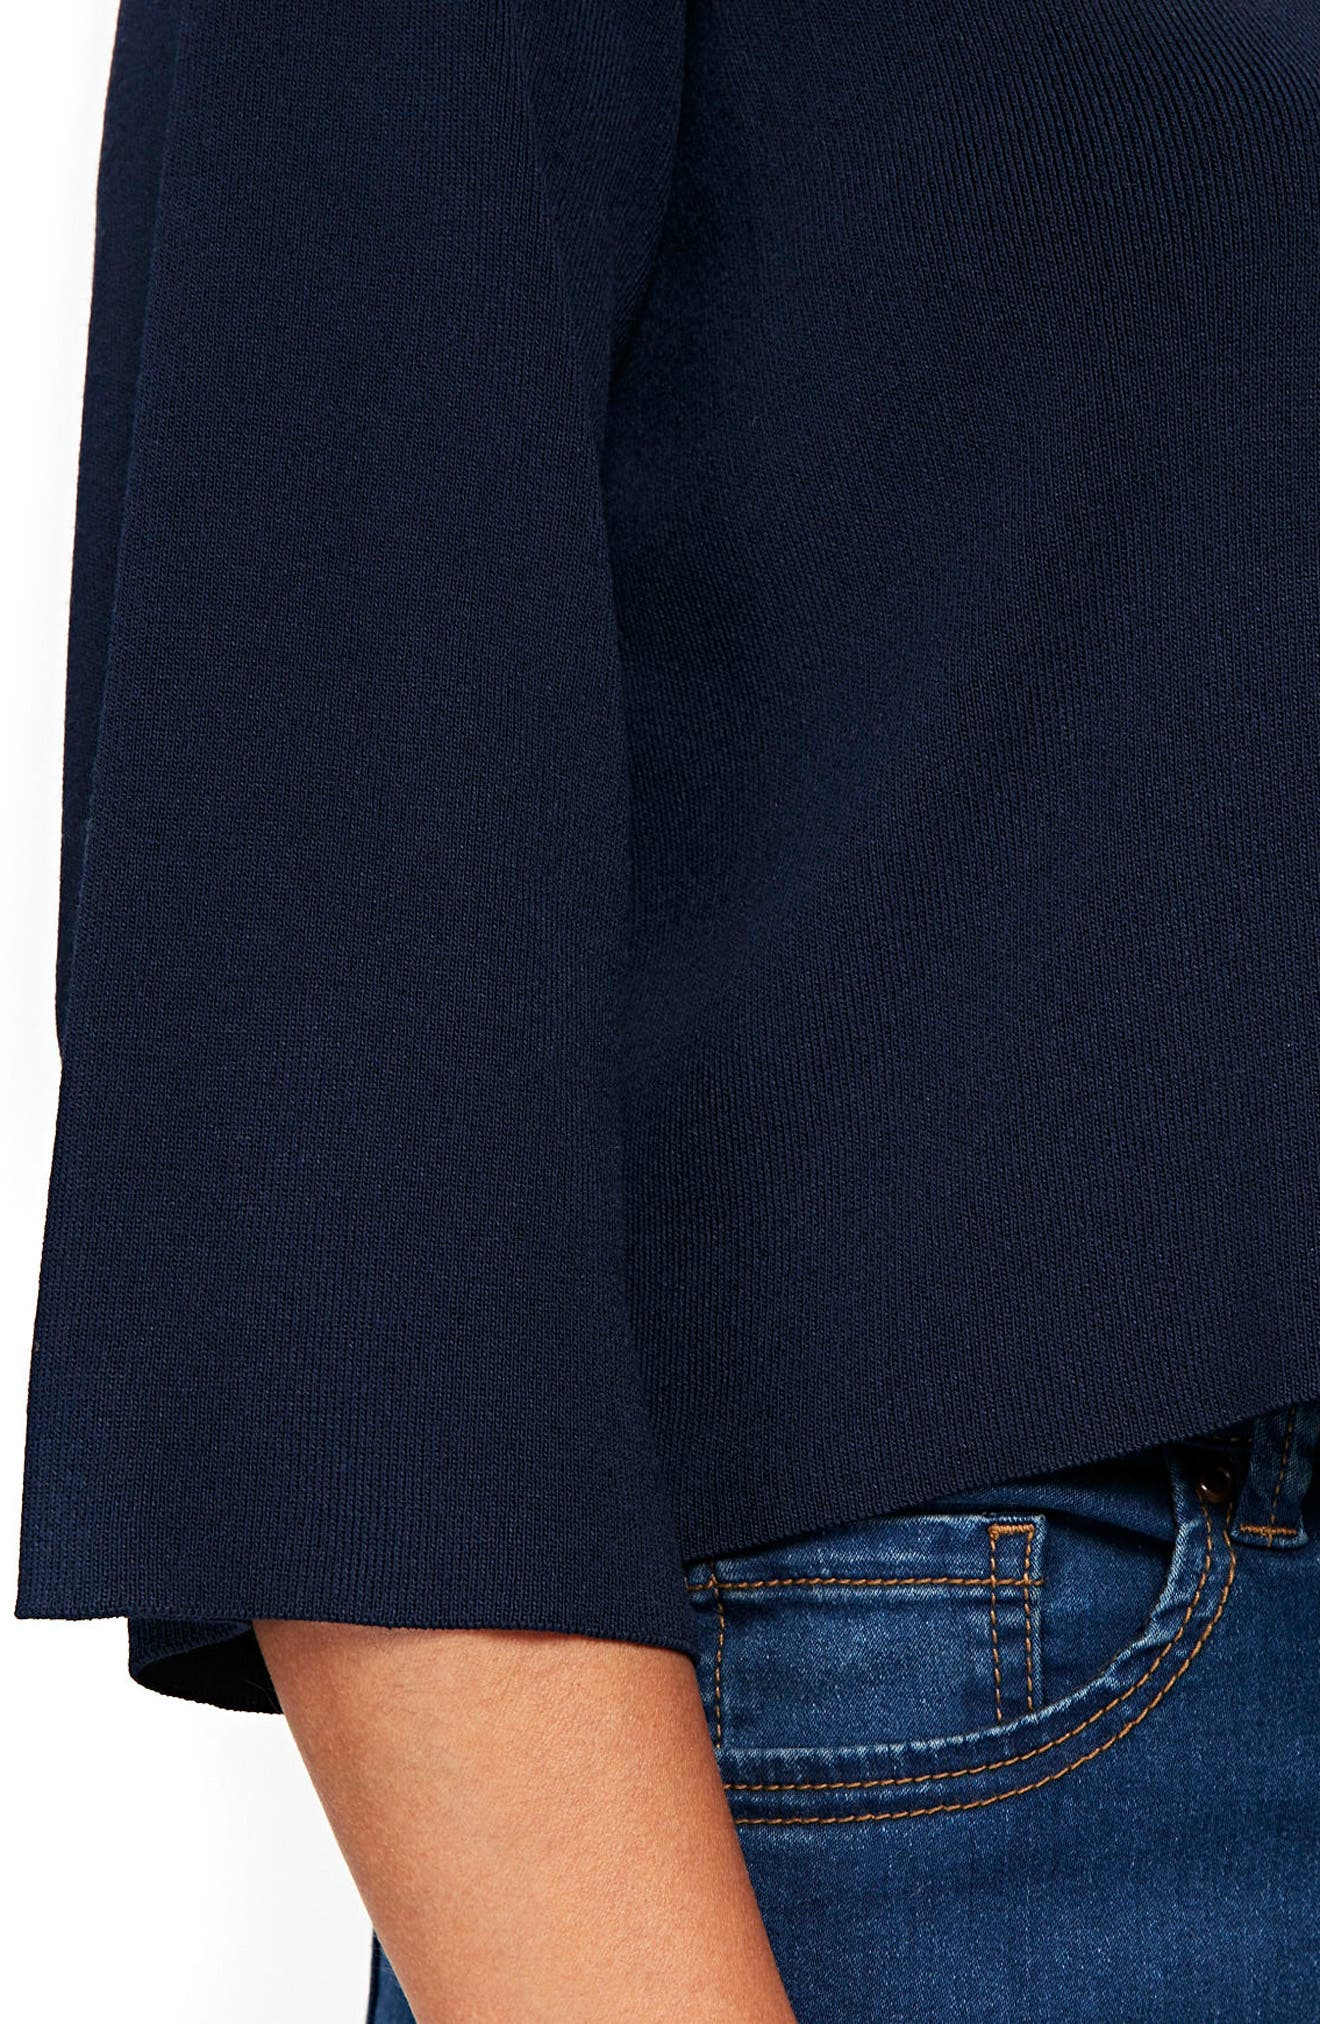 Wide Sleeve Shrug Sweater,                             Alternate thumbnail 2, color,                             NAVY